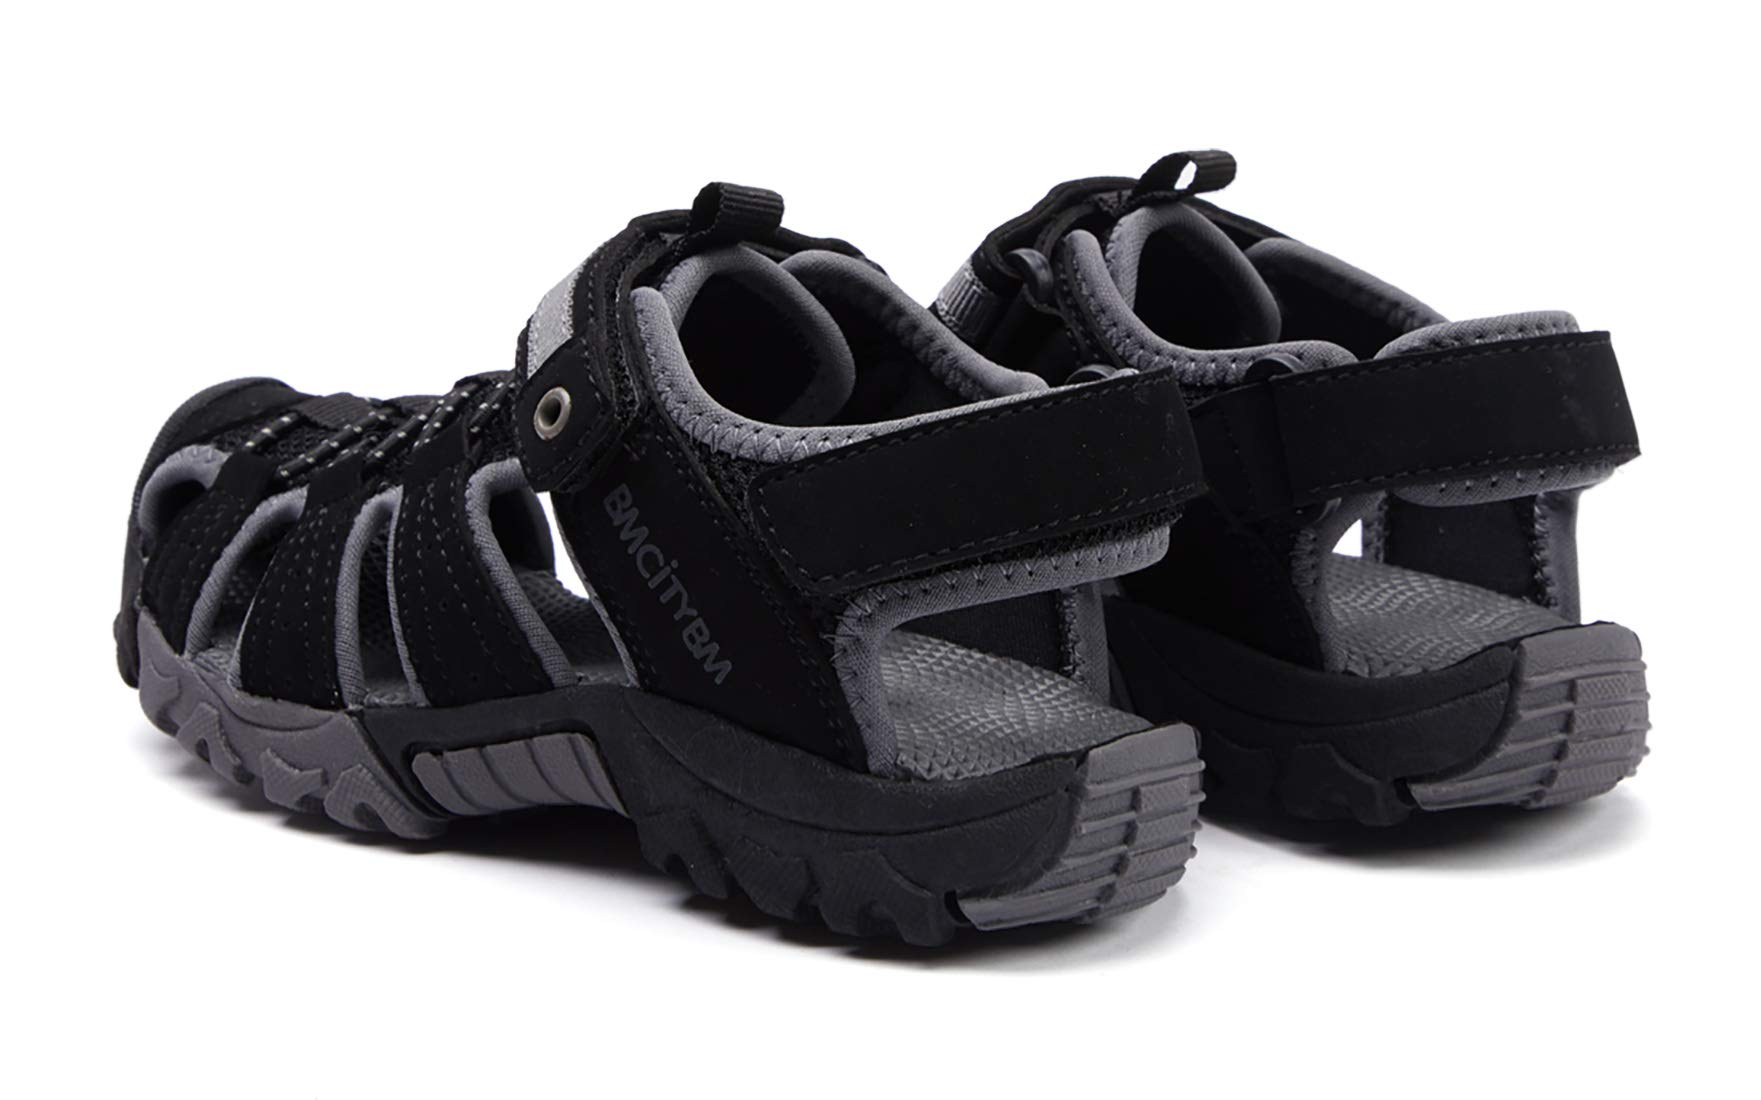 BMCiTYBM Girls Boys Hiking Sport Sandals Toddler Kid Closed Toe Water Shoes Black Size 3 by BMCiTYBM (Image #5)